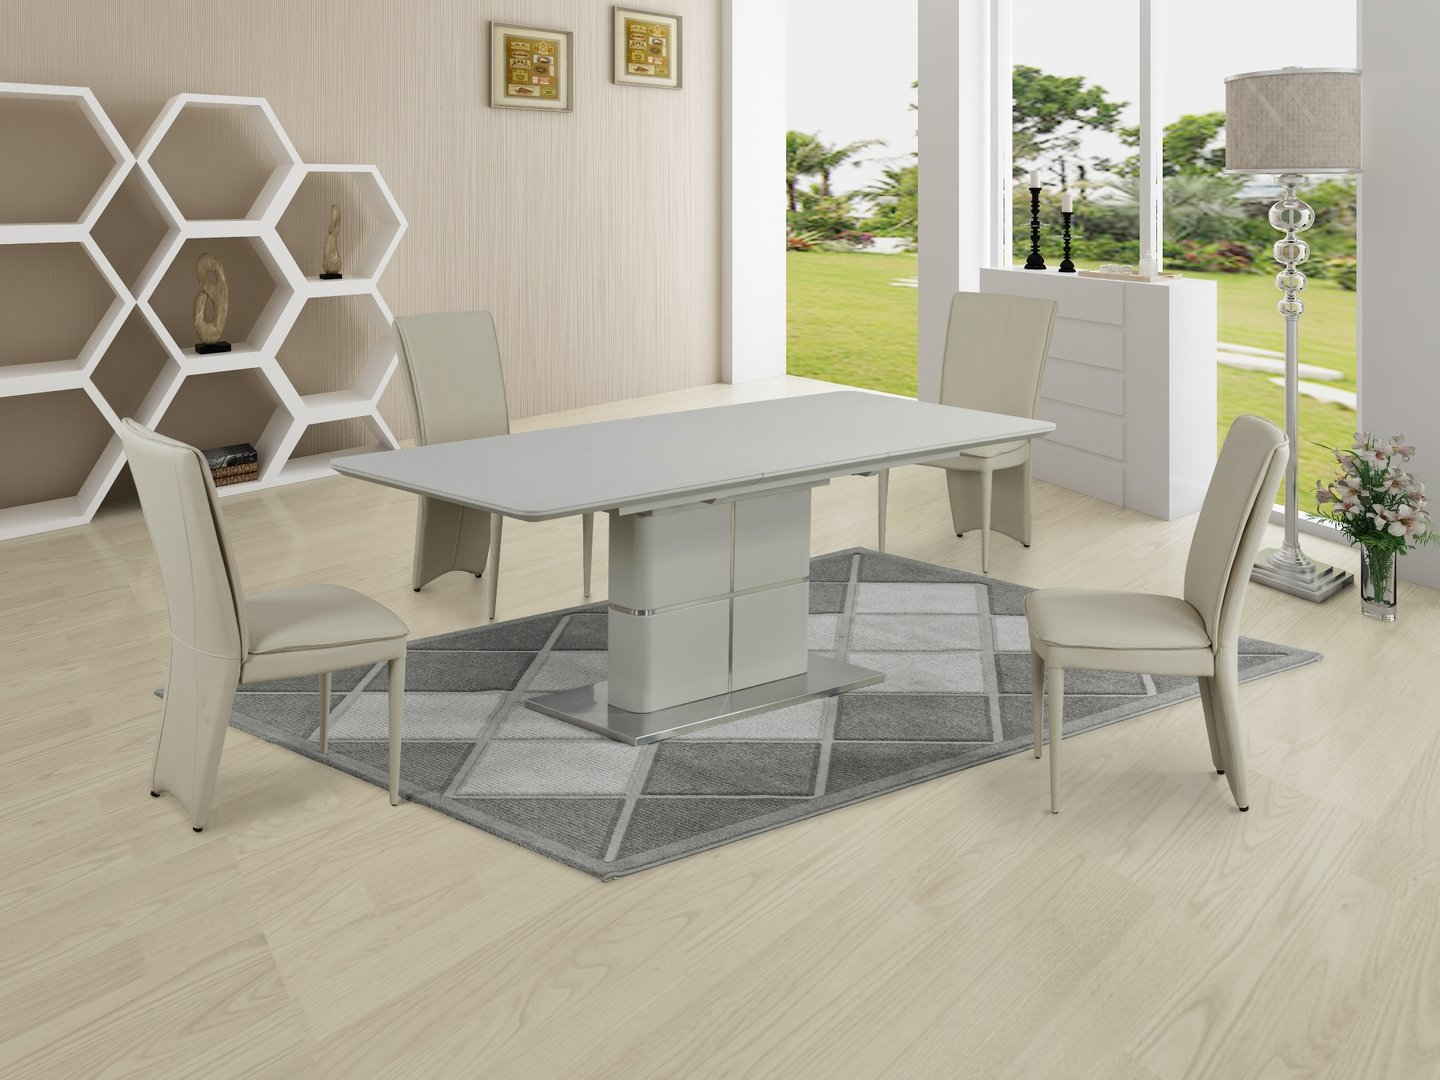 Matt Cream Ceramic Dining Table And 6 Chairs Homegenies